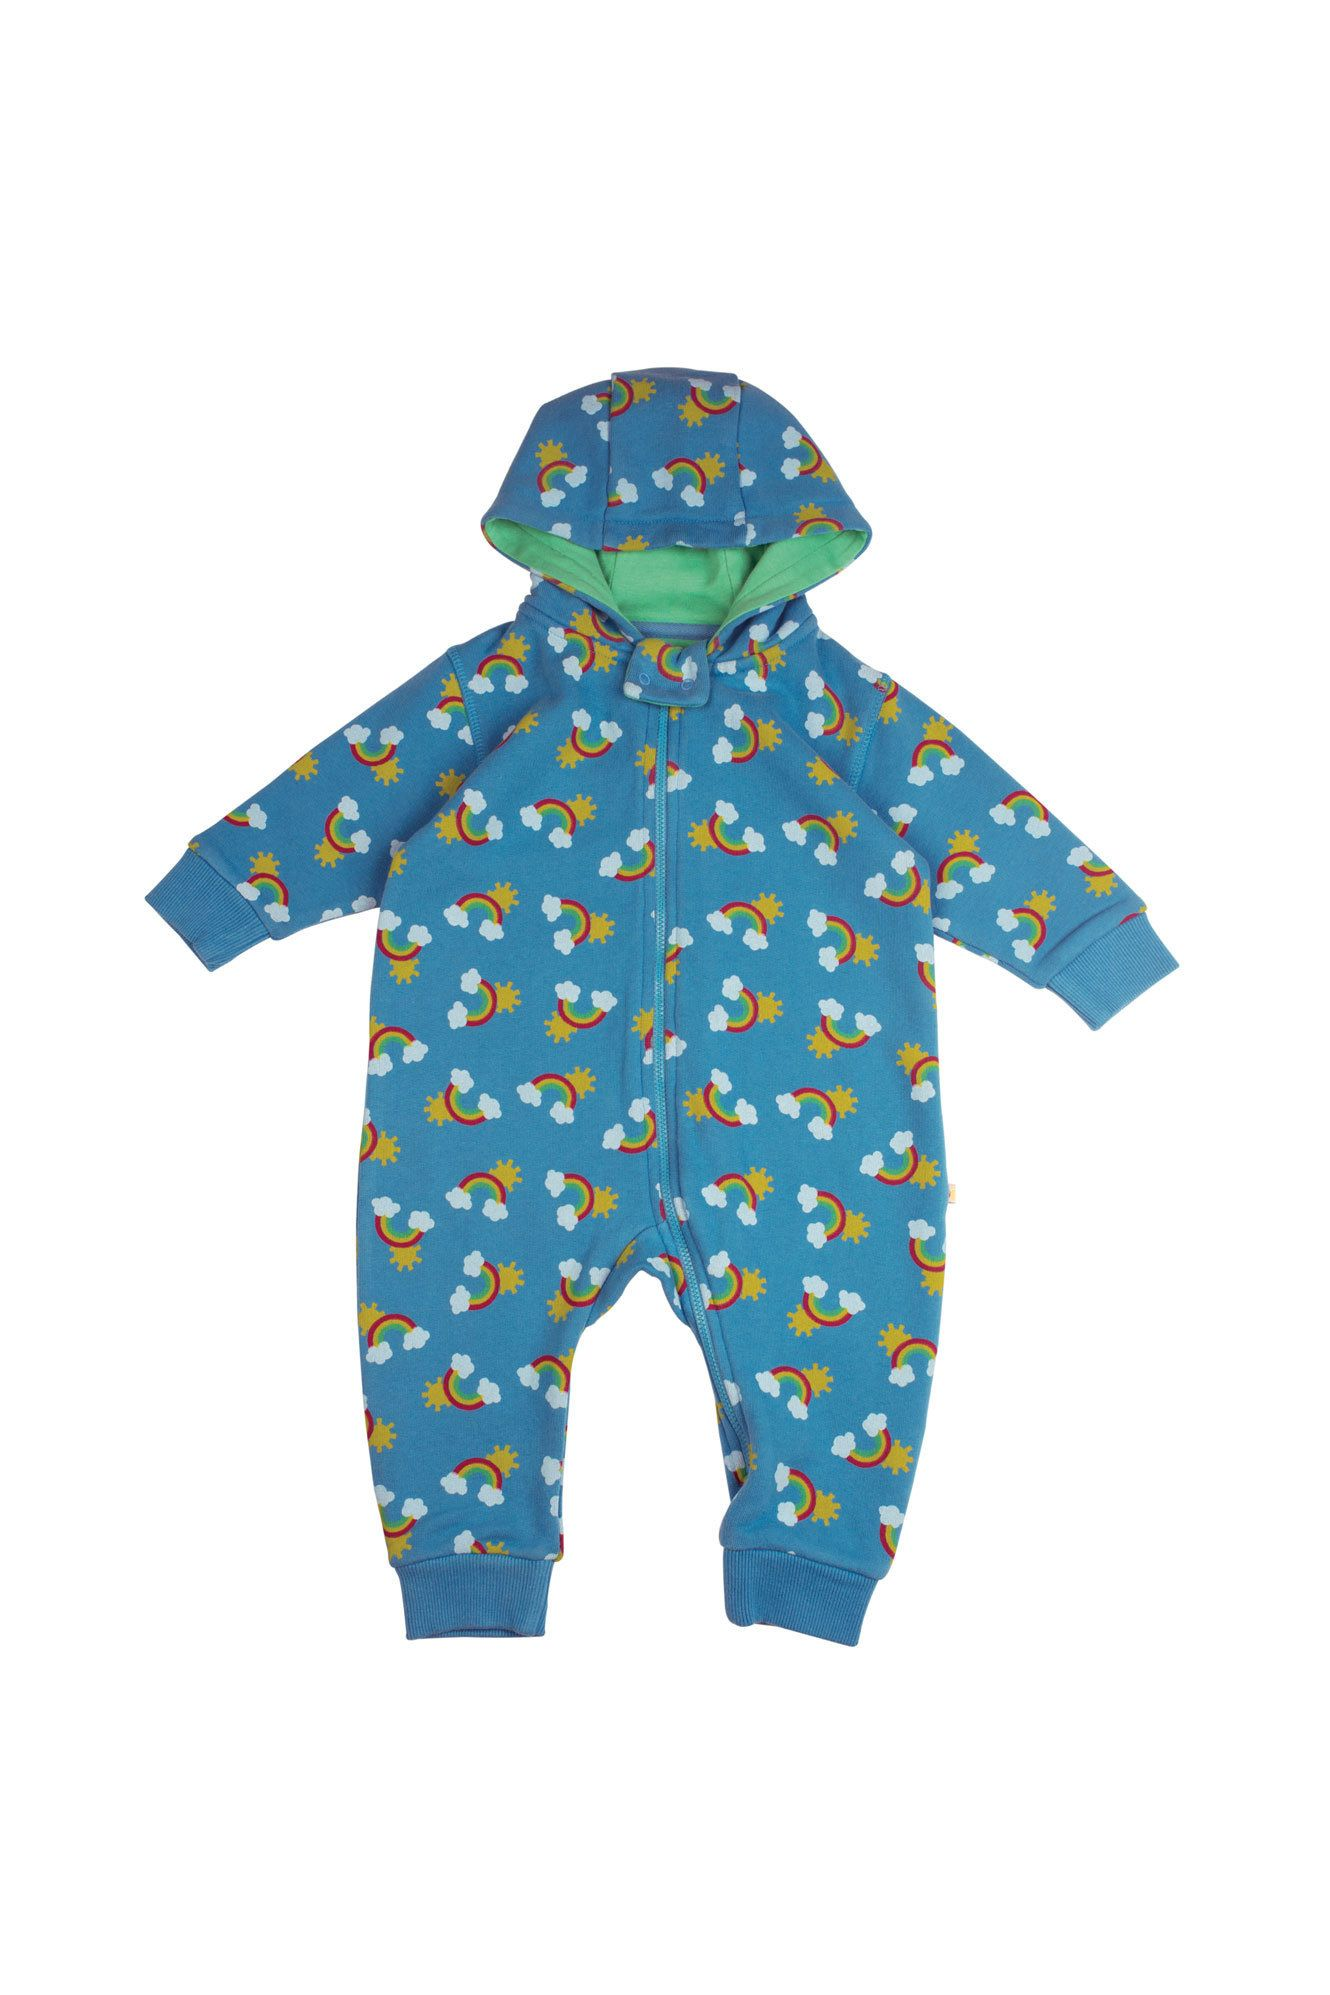 Snuggle Suit Buy Toddler Boy Coats